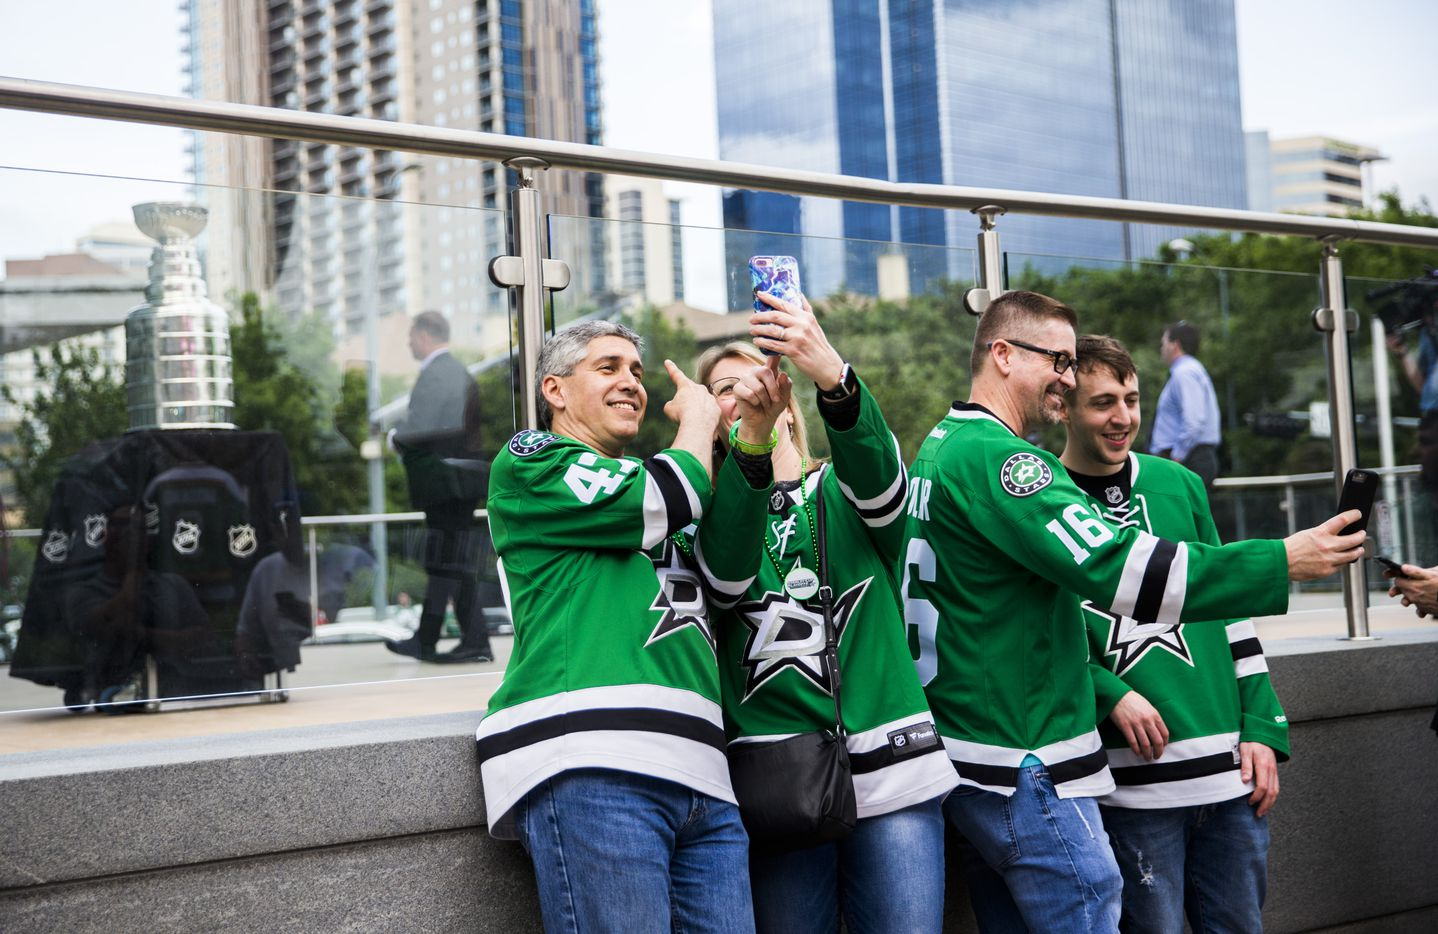 Fans take photos with the Stanley Cup outside American Airlines Center before Game 6 of the Stars-Predators playoff series.